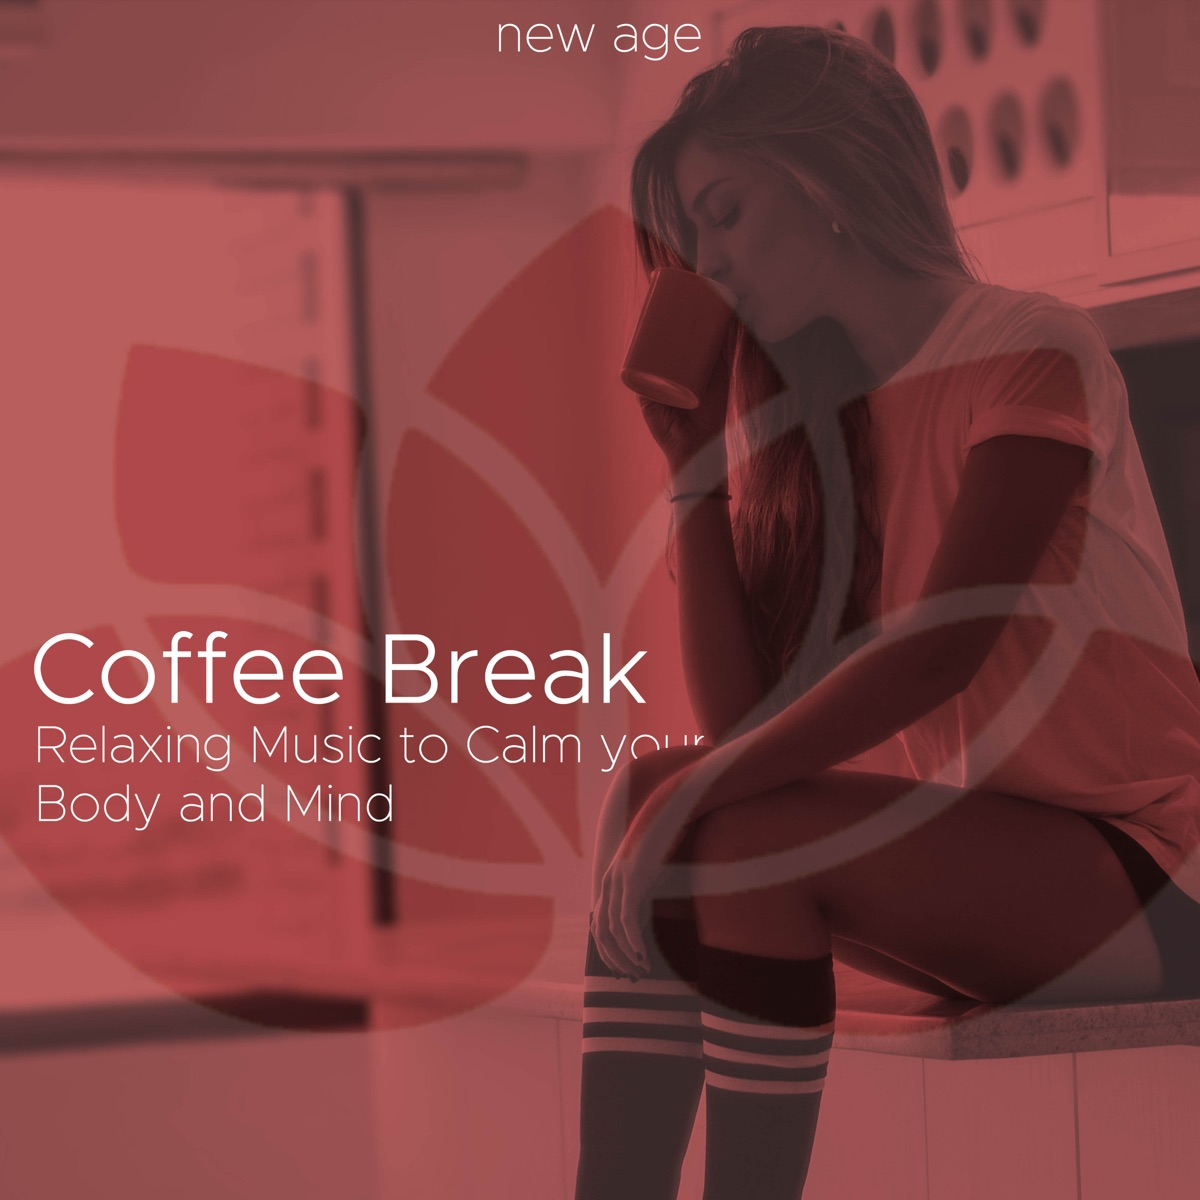 Coffee Break - Relaxing Music to Calm your Body and Mind Album Cover